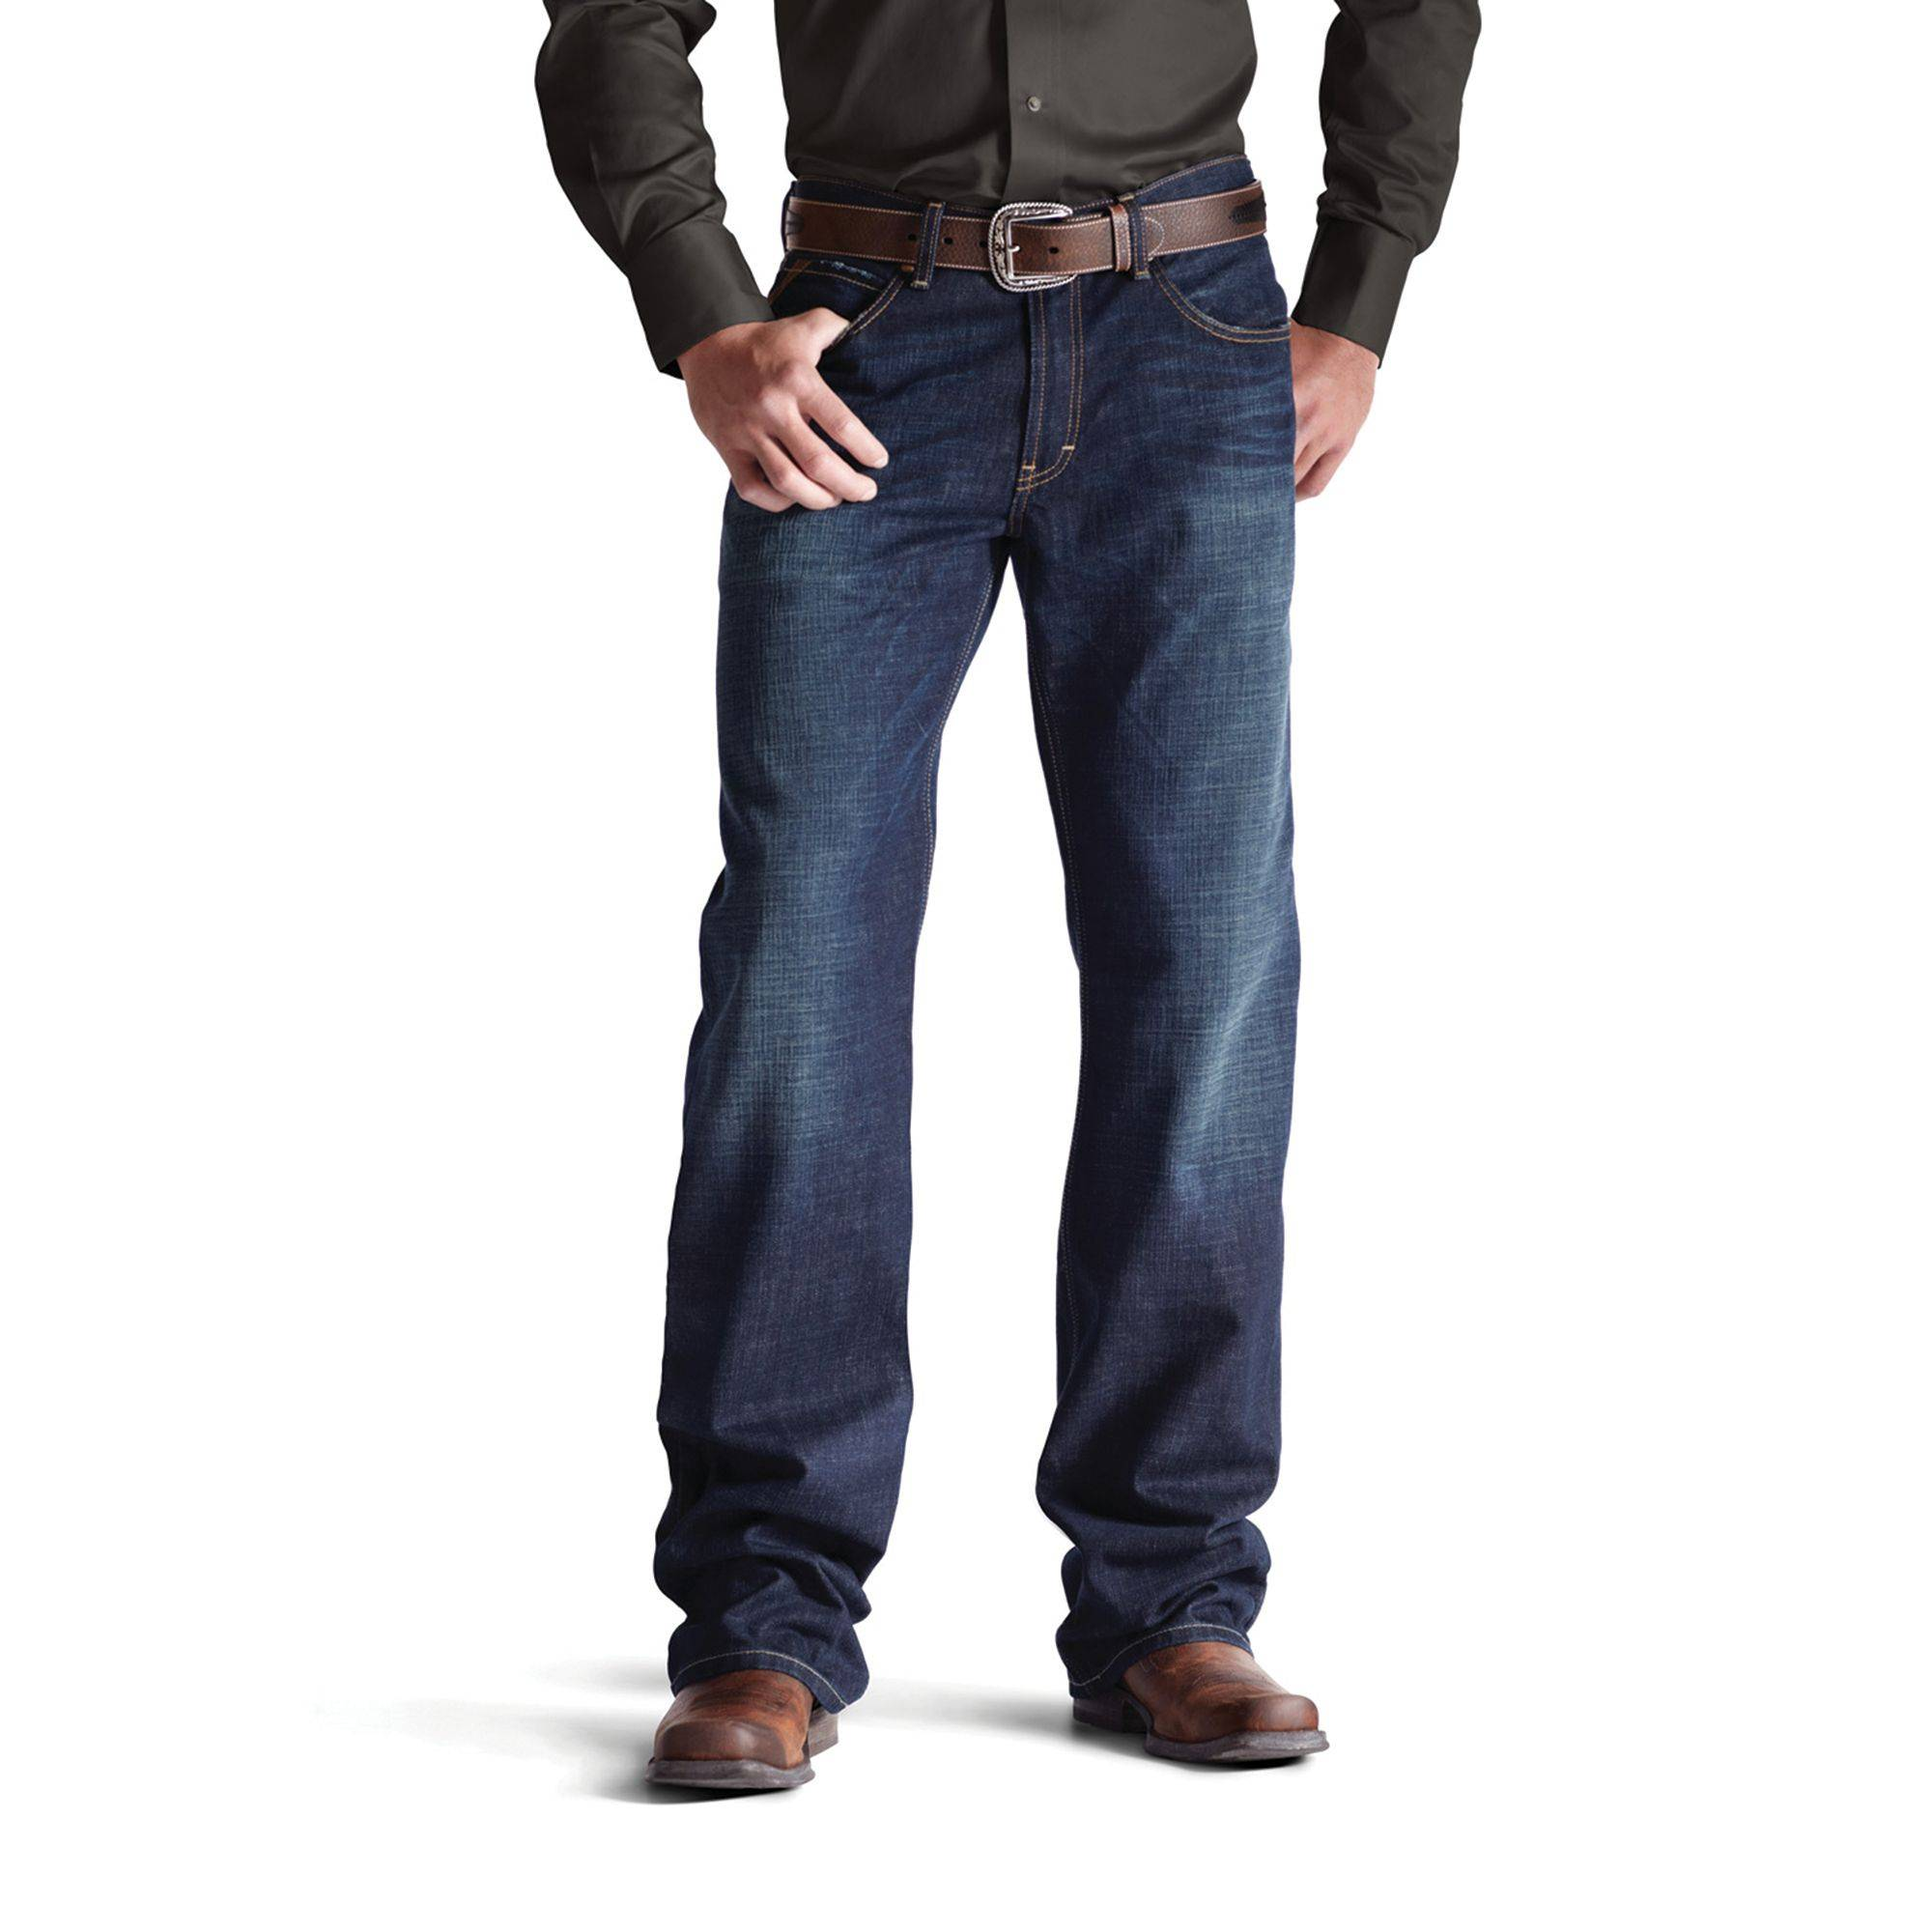 Ariat M4 Low Rise Jeans - Men's